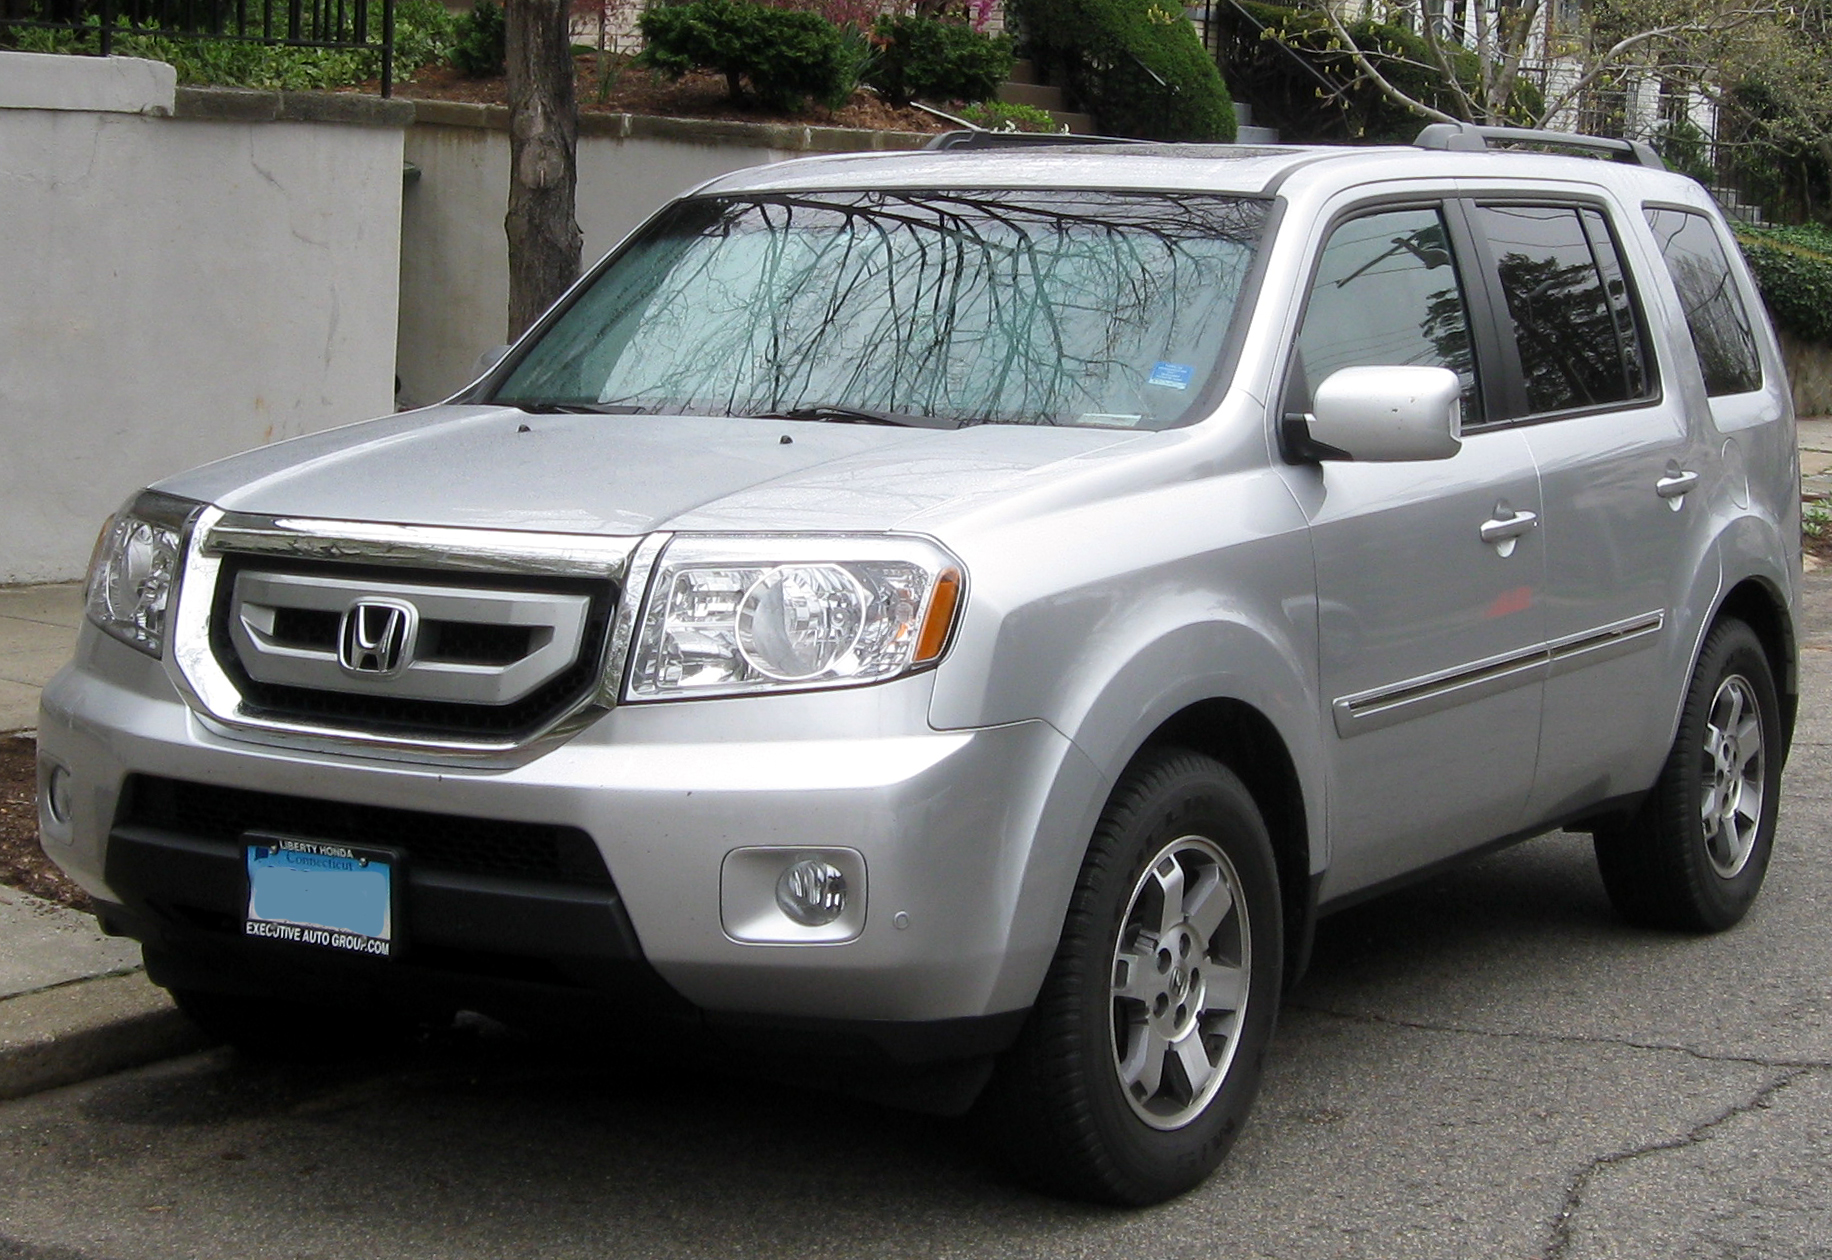 File:2009-2011 Honda Pilot -- 03-21-2012.JPG - Wikimedia Commons